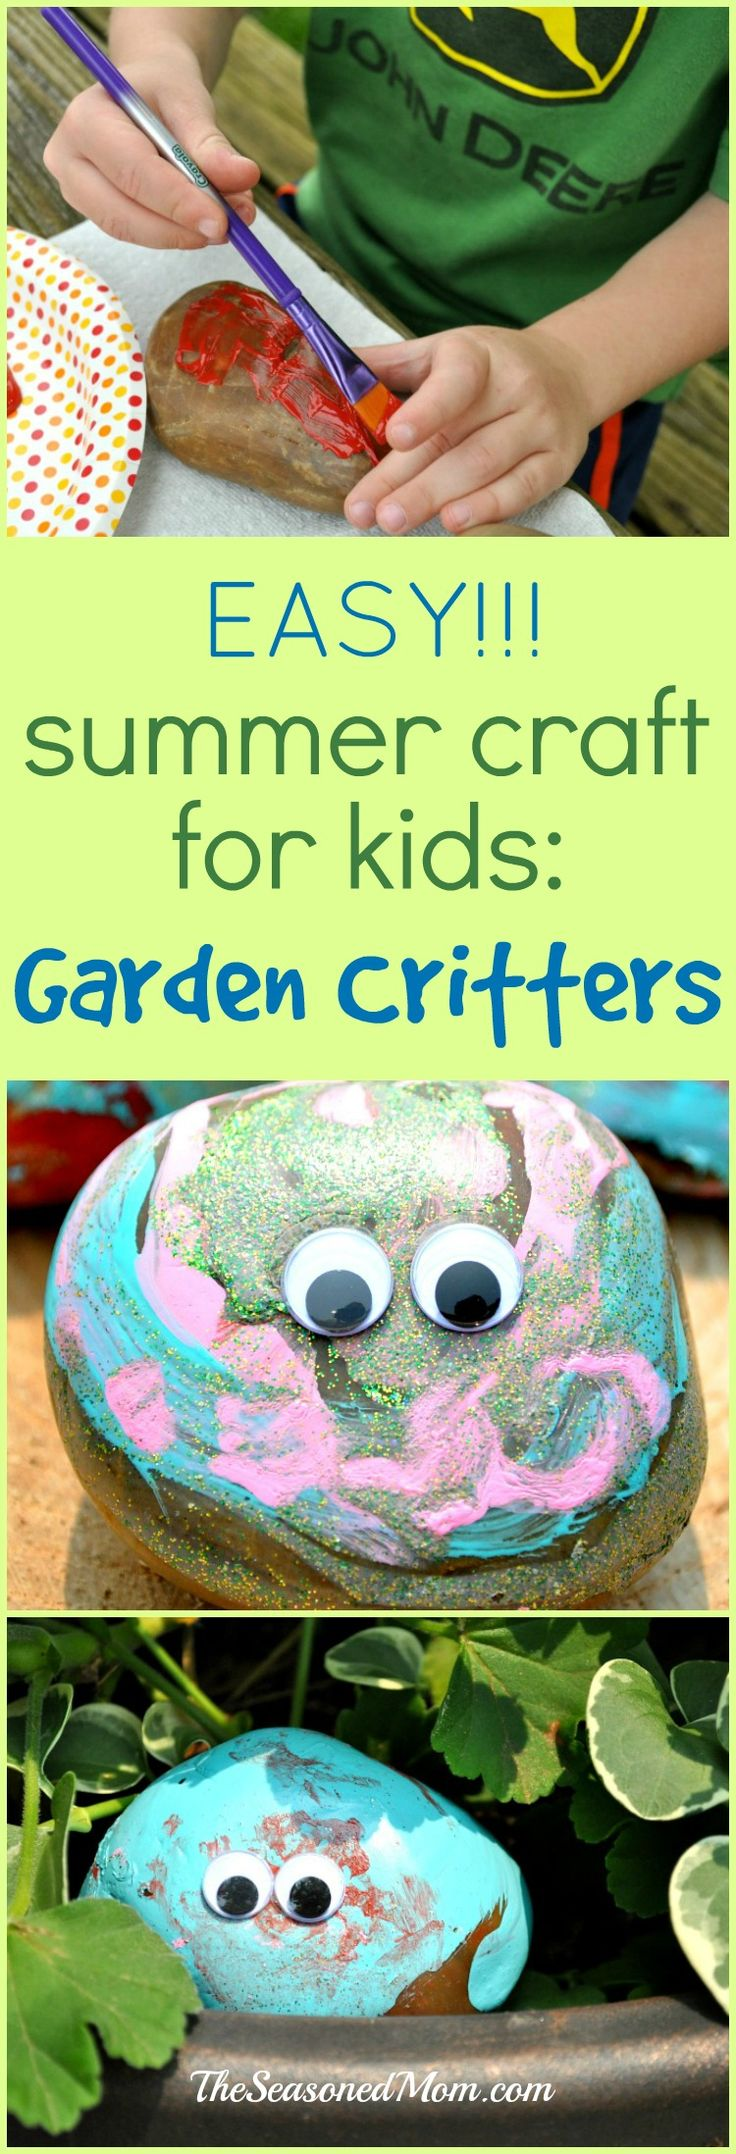 Easy Summer Craft for Kids  Garden Critters3390 best images about Craft   arty ideas for kids and adults on  . Fun Crafts For Your Home. Home Design Ideas